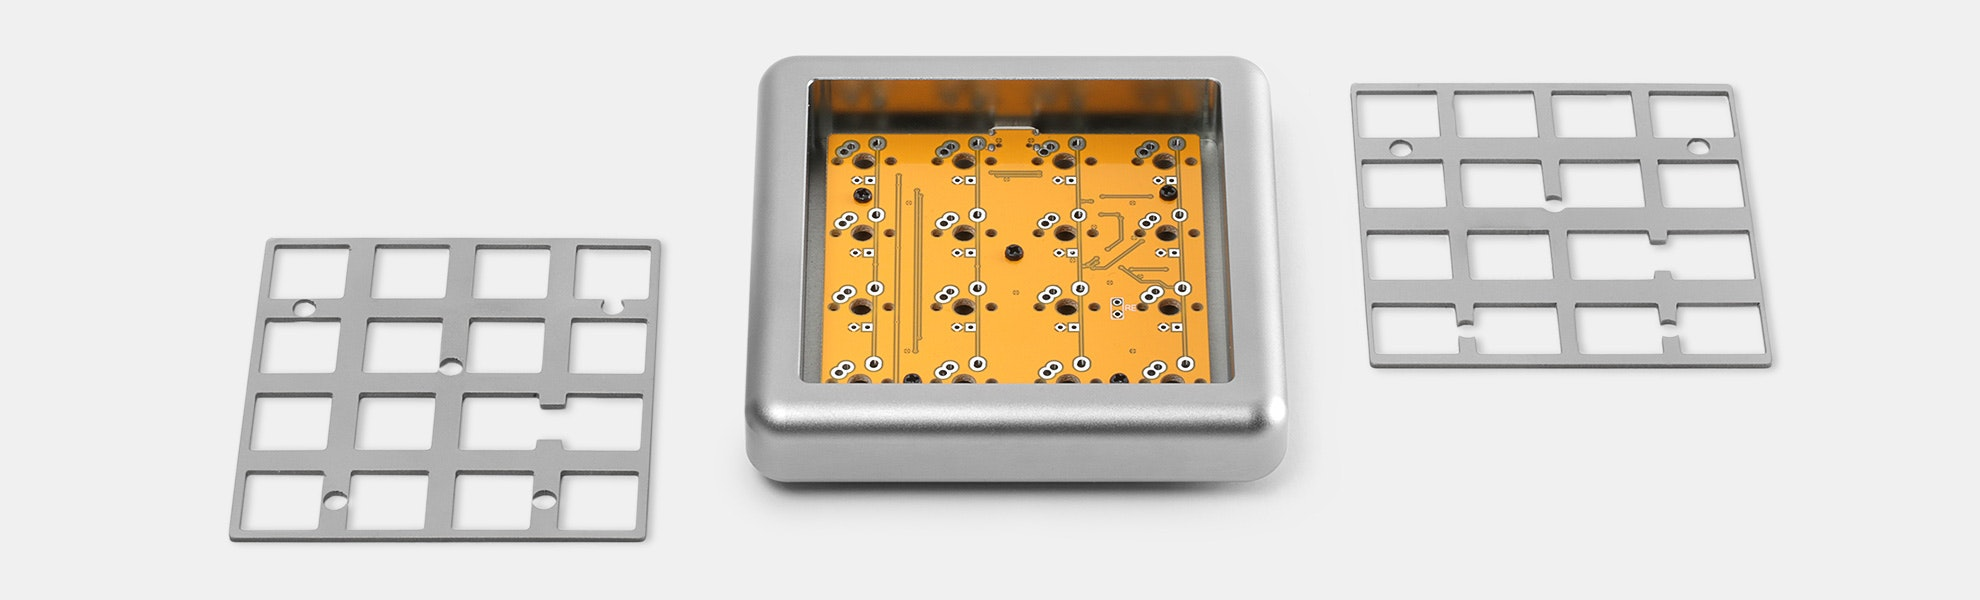 BM-16A 16-Key Programmable Mini Pad Kit